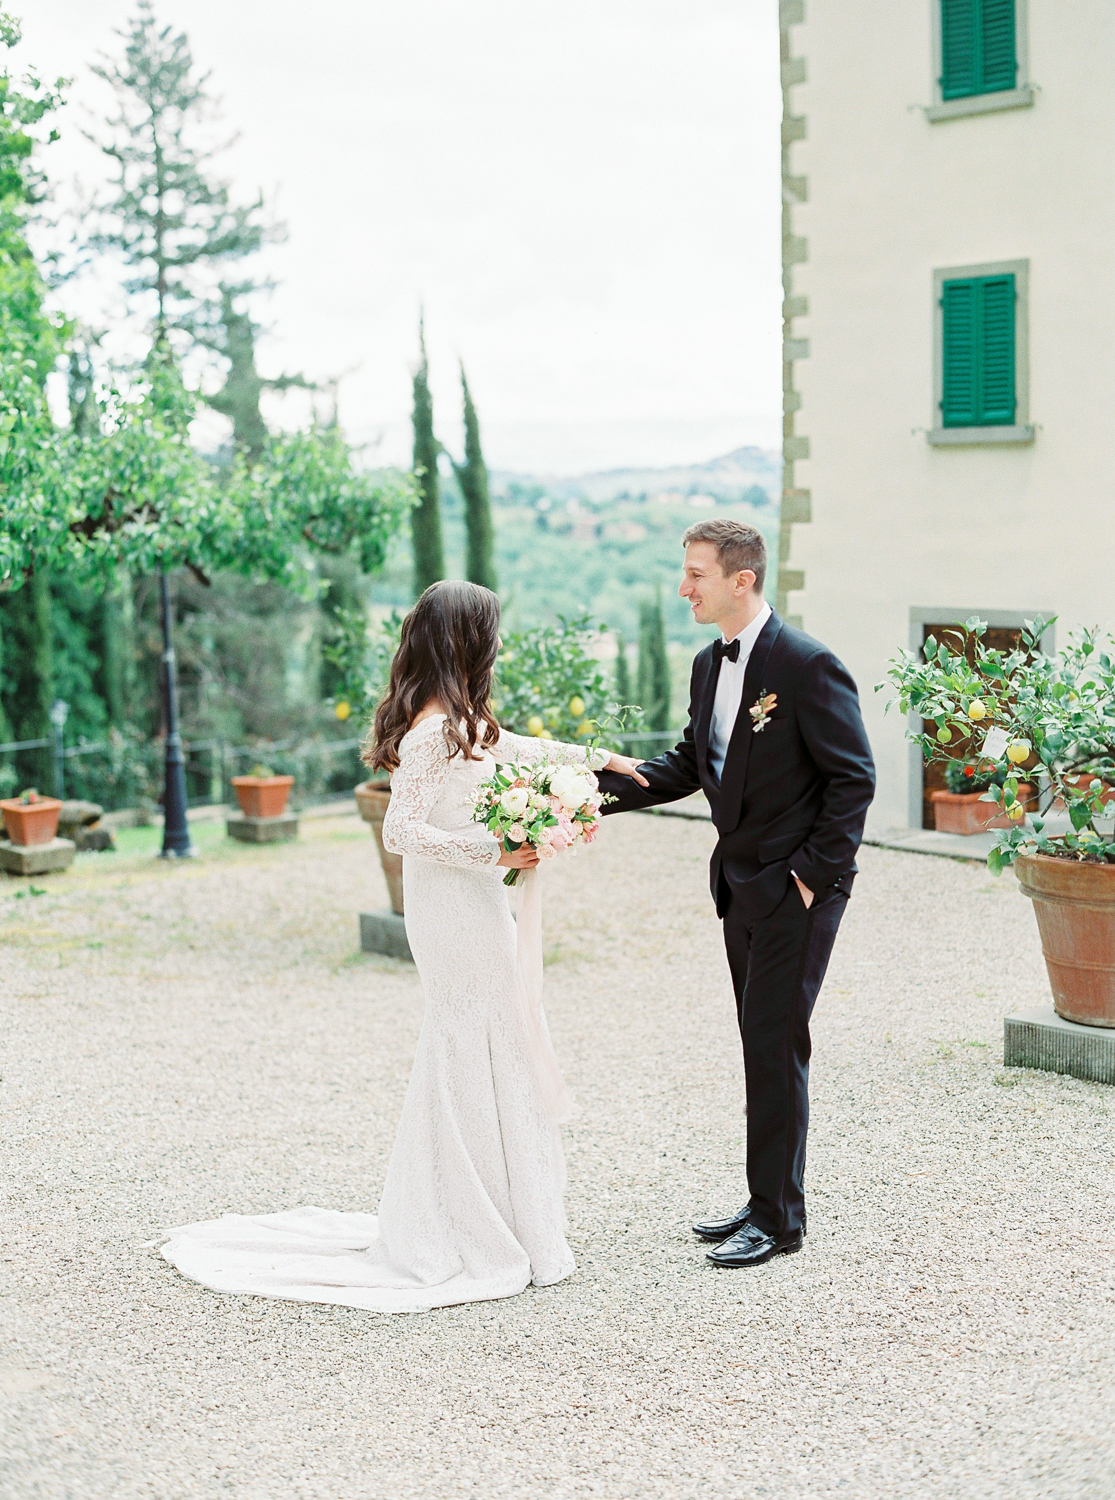 masha golub photography 1 - LOVE IN TUSCANY